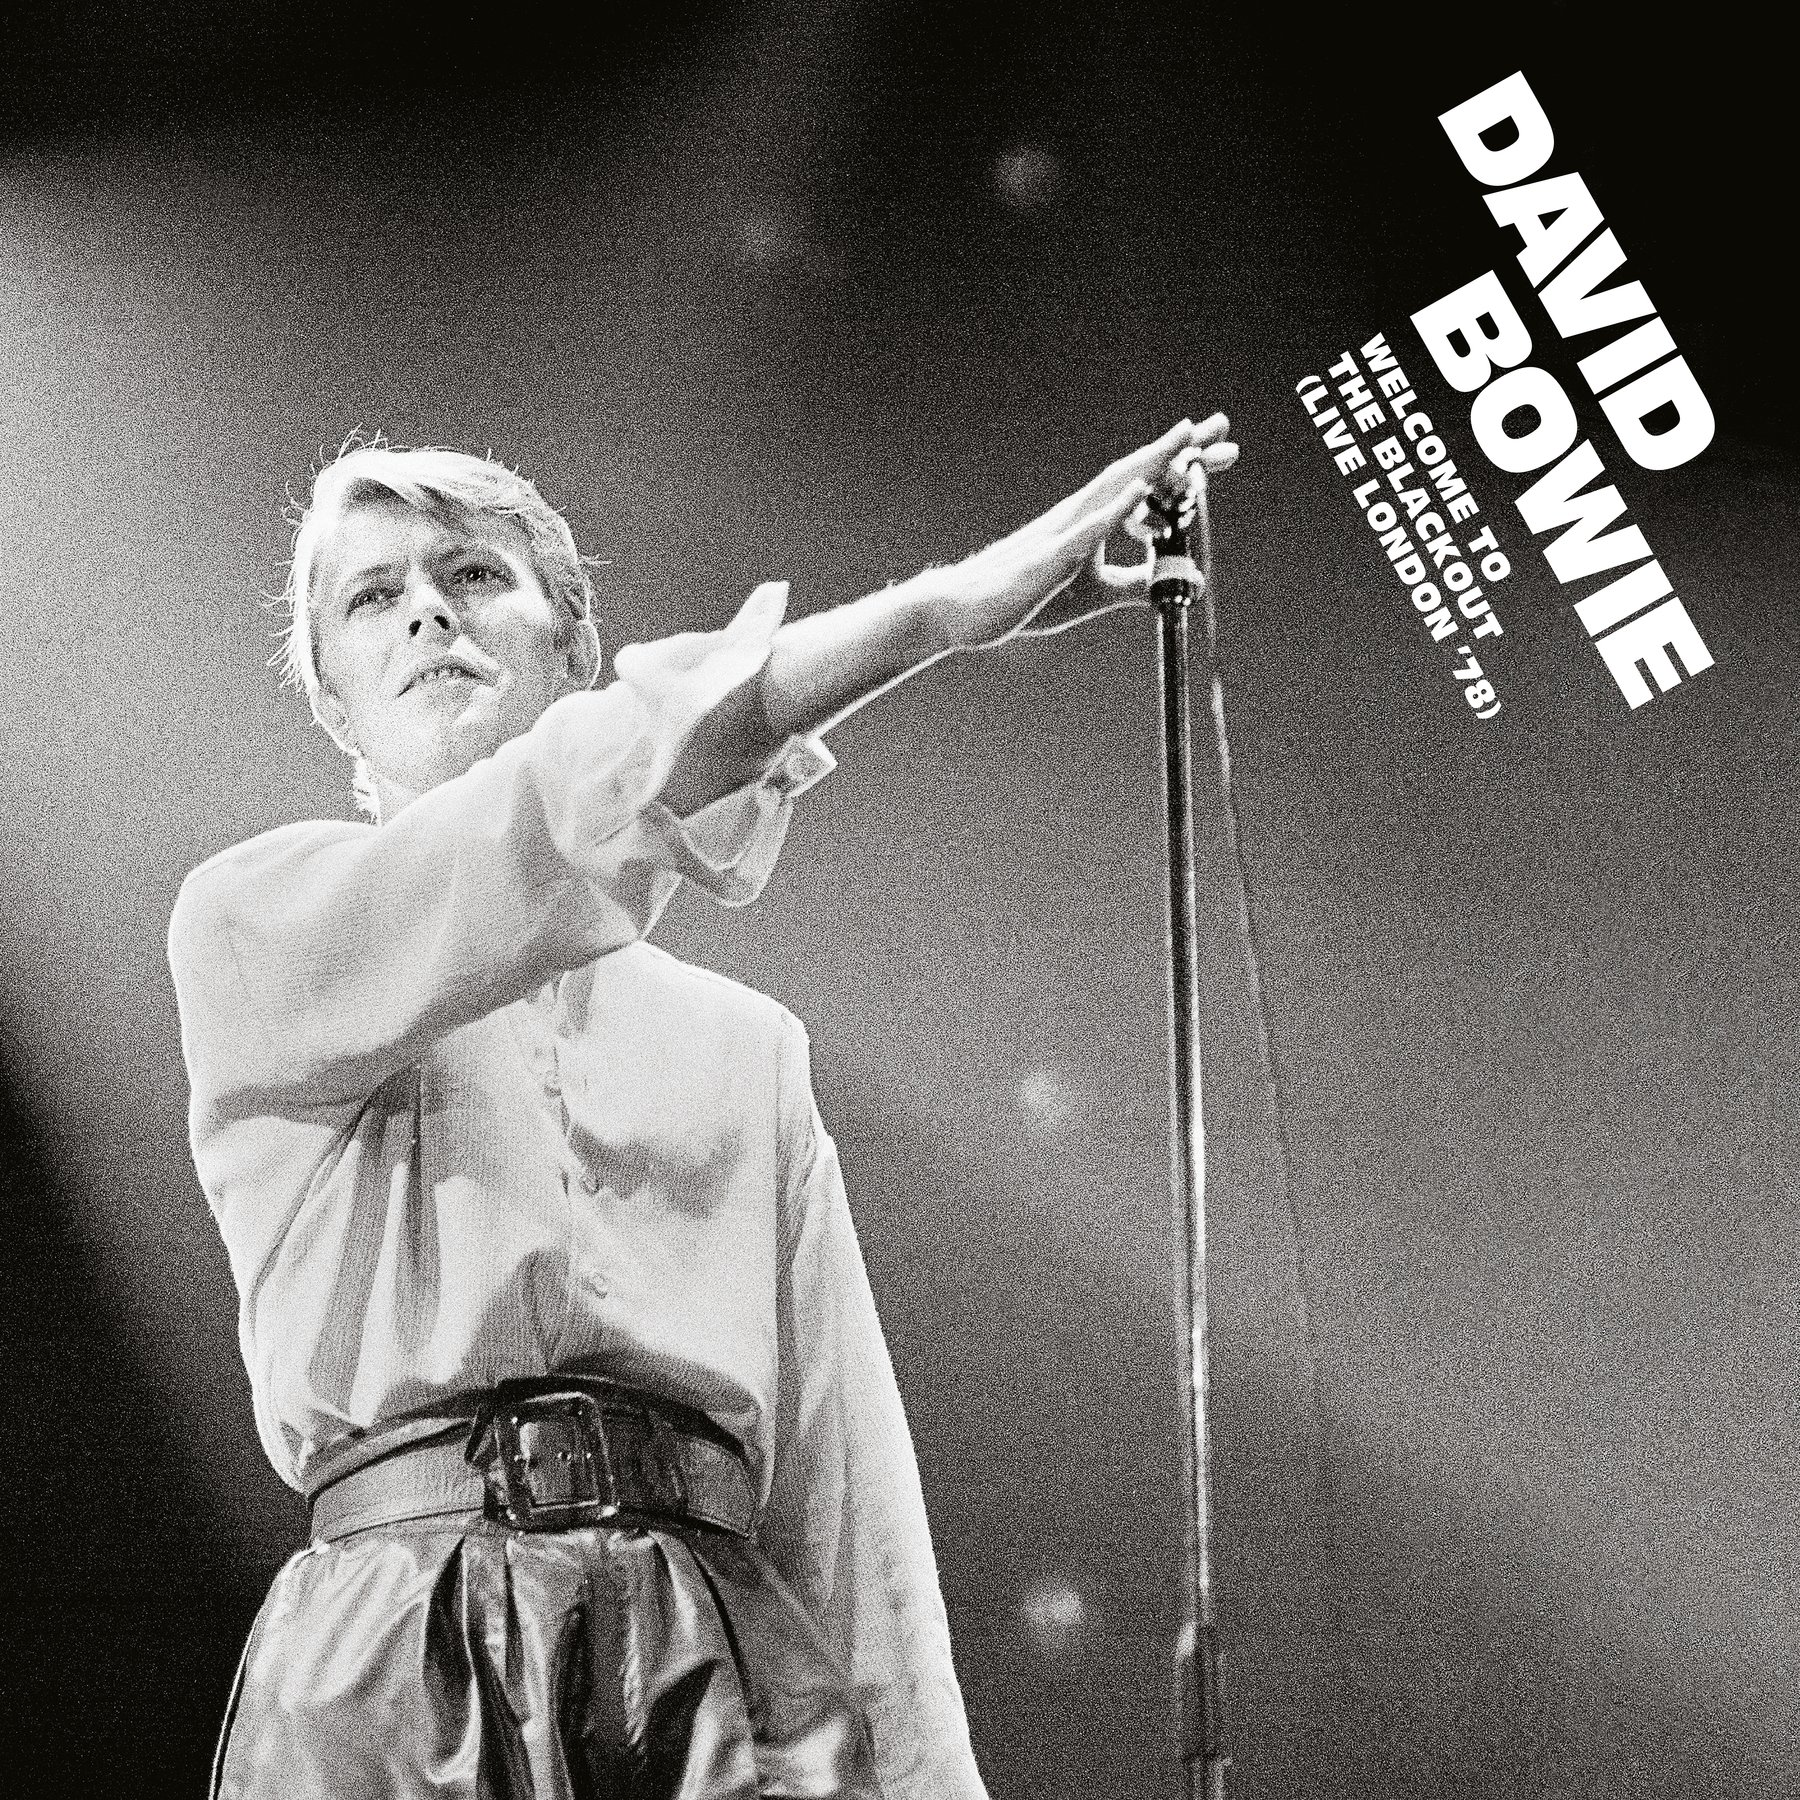 DAVID BOWIE | 'Welcome To The Blackout (Live in London '78)' 3xLP